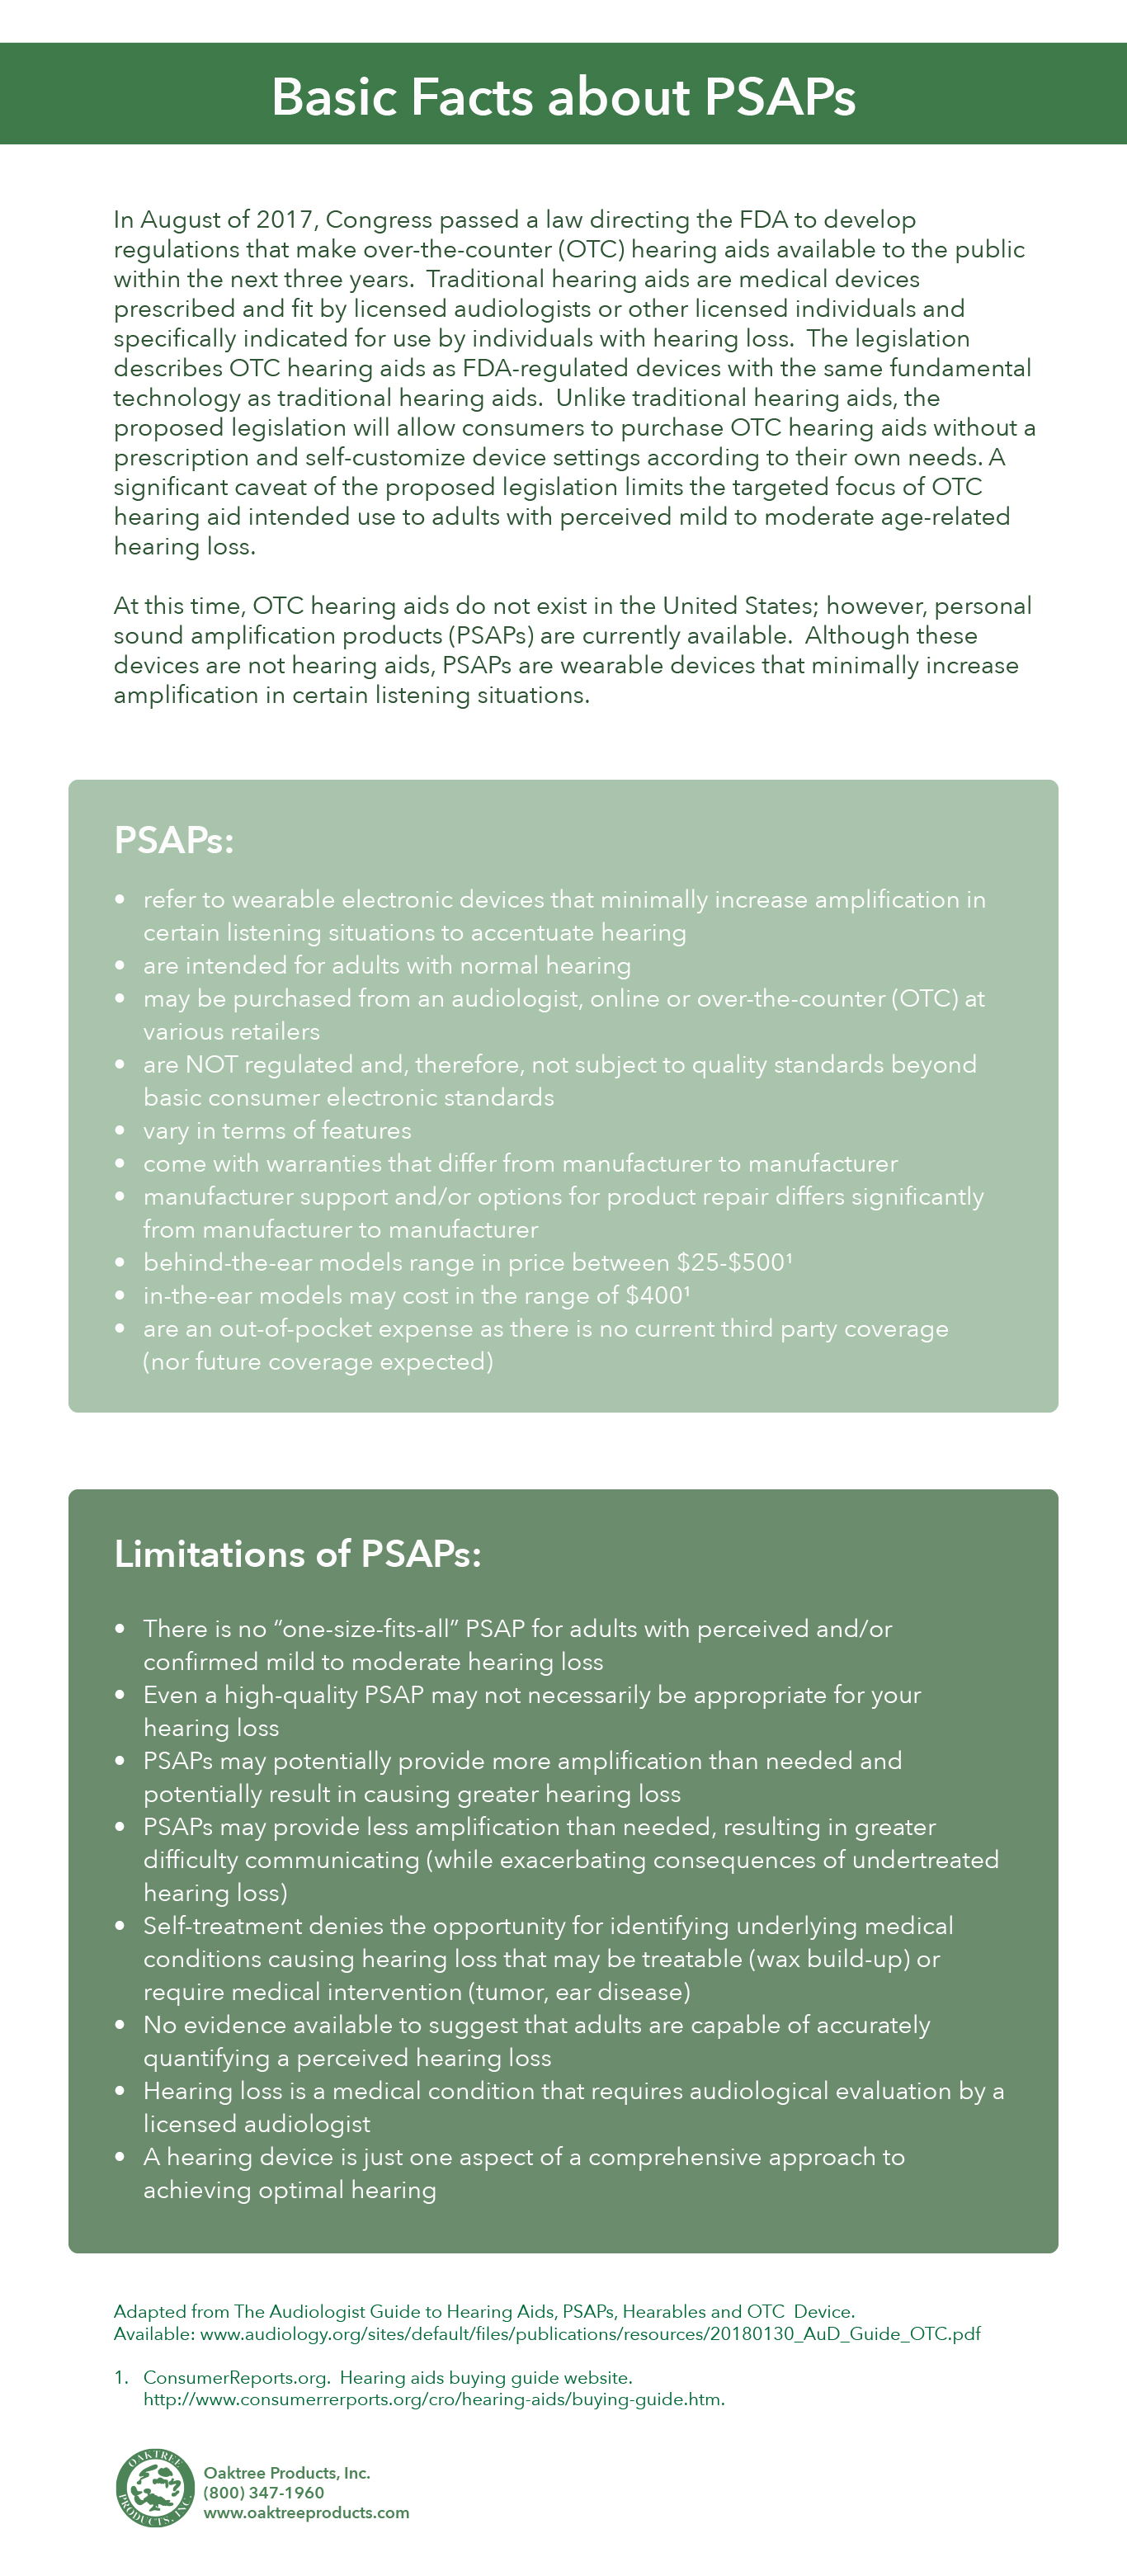 Pros-and-Cons-of-PSAPs